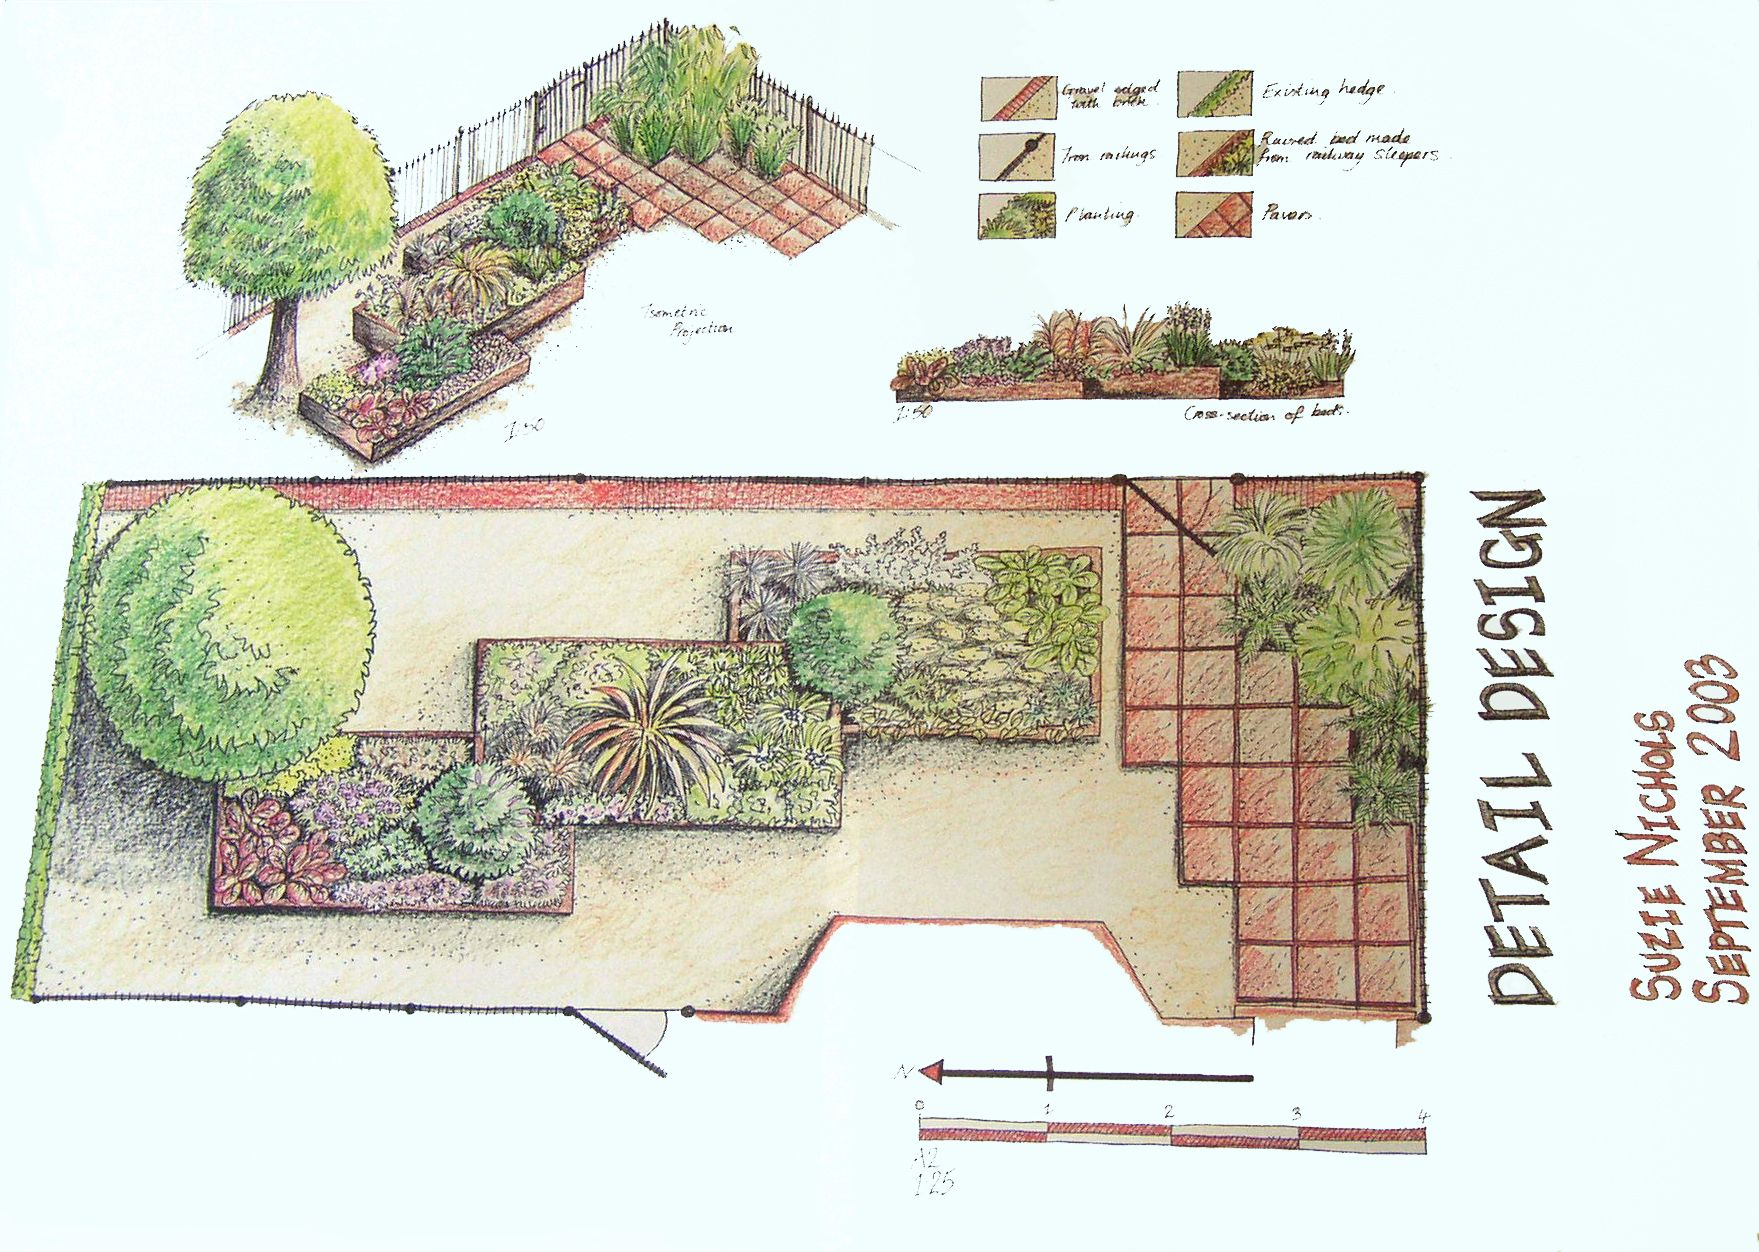 16 simple garden design plans ideas small garden design for Garden design plans ideas